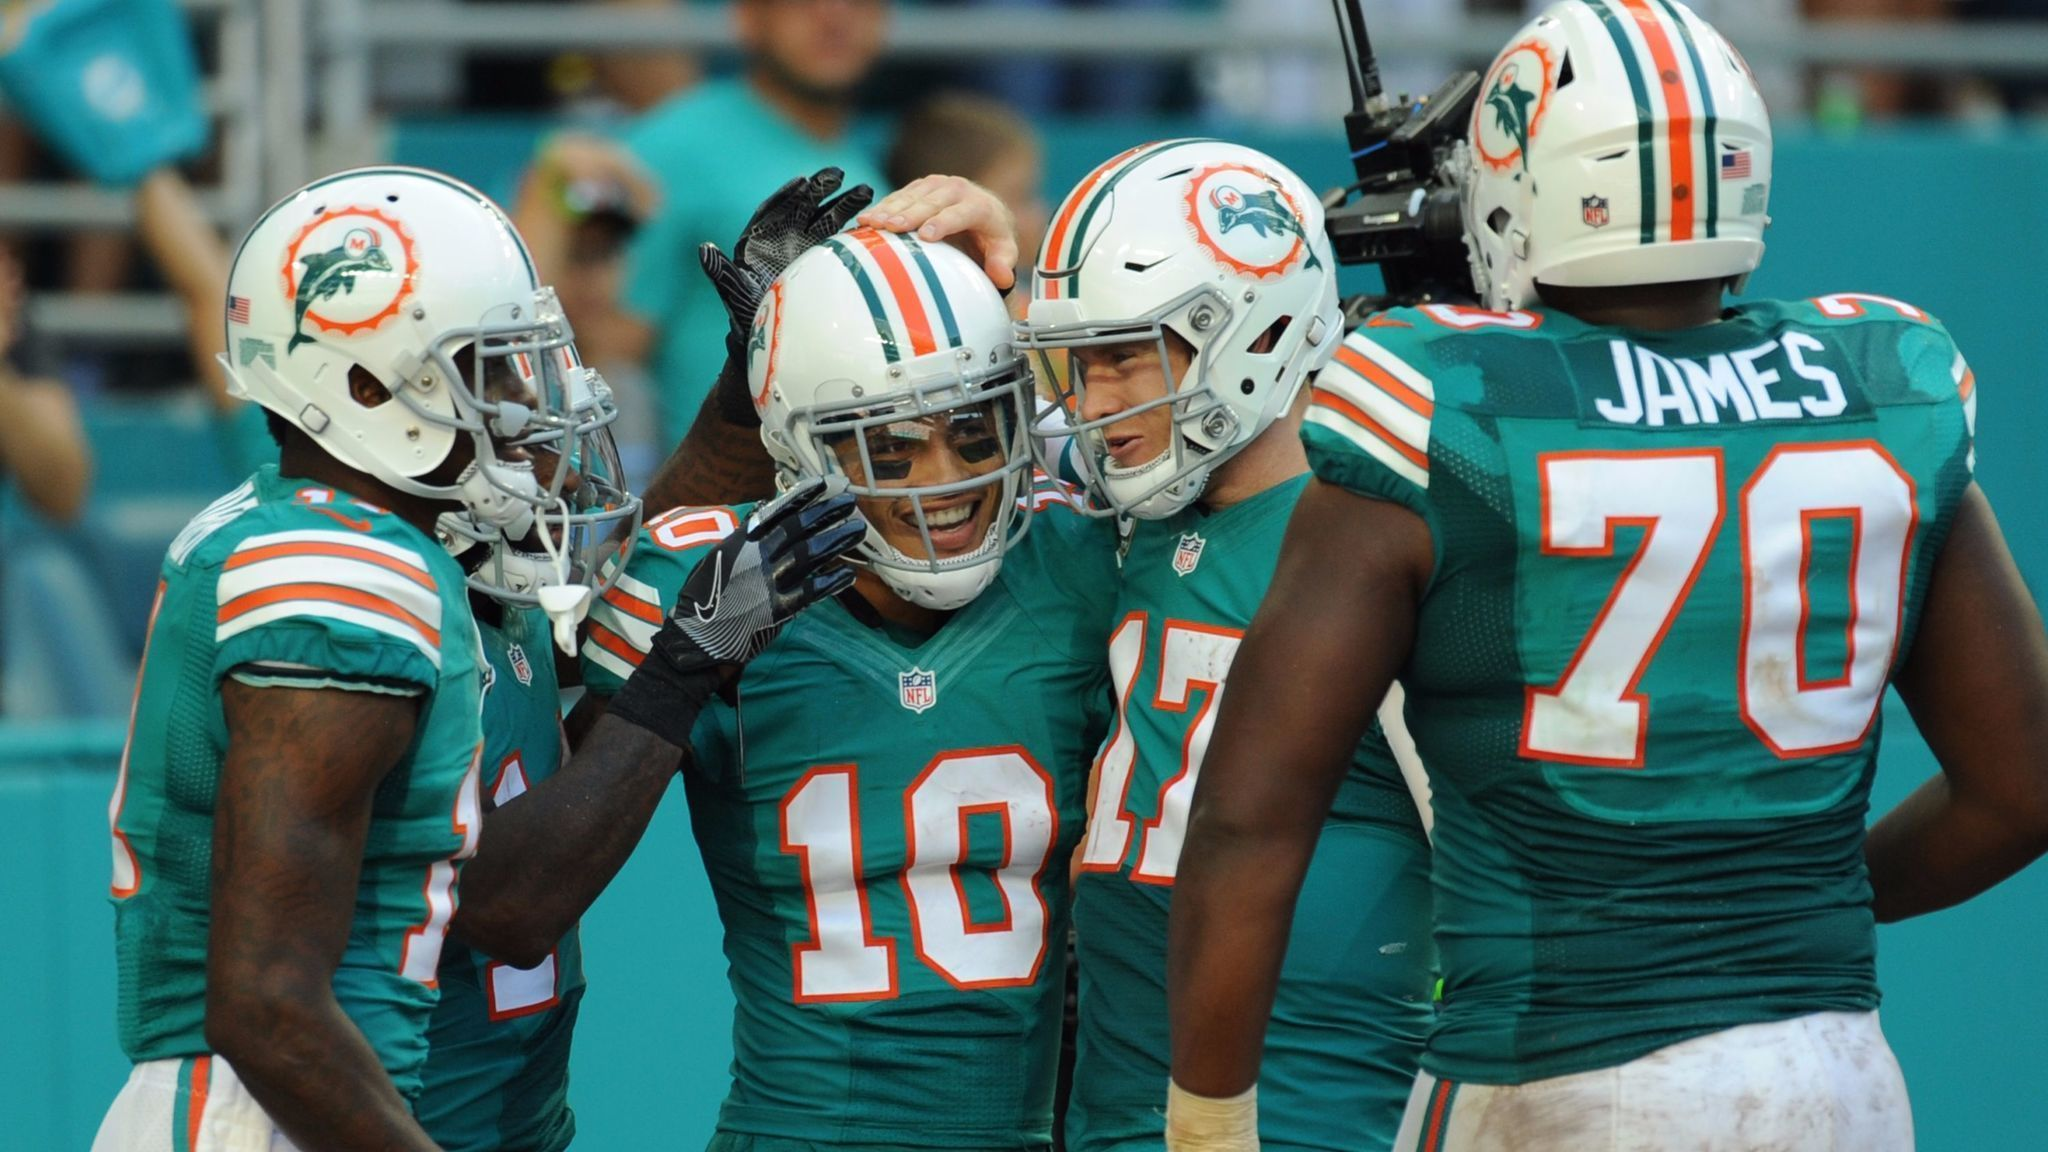 dolphins throwback jersey